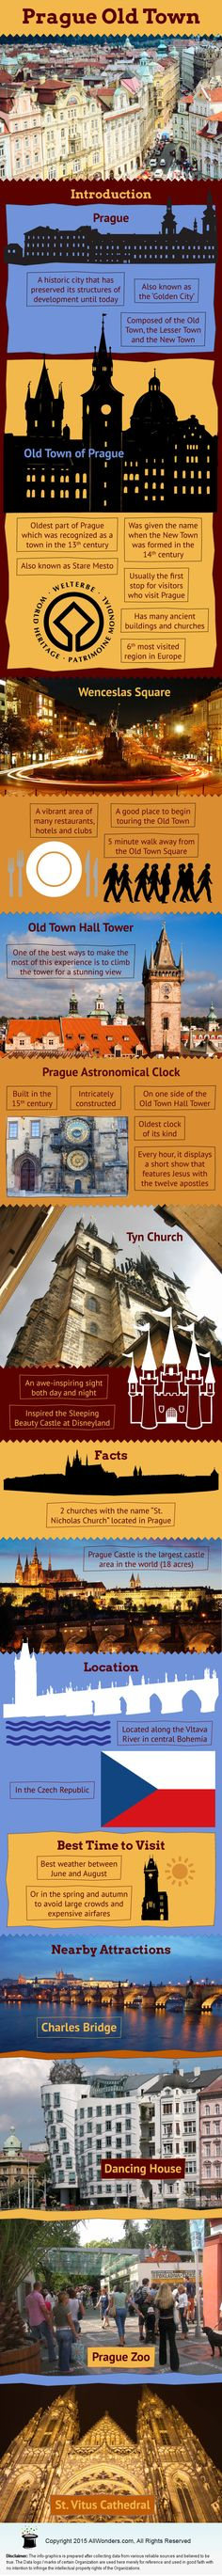 Prague Old Town Infographic - Check out the Inforgraphic showing Facts and Information about Prague Old Town. Find out about its location, best time to visit, nearby attractions and more.